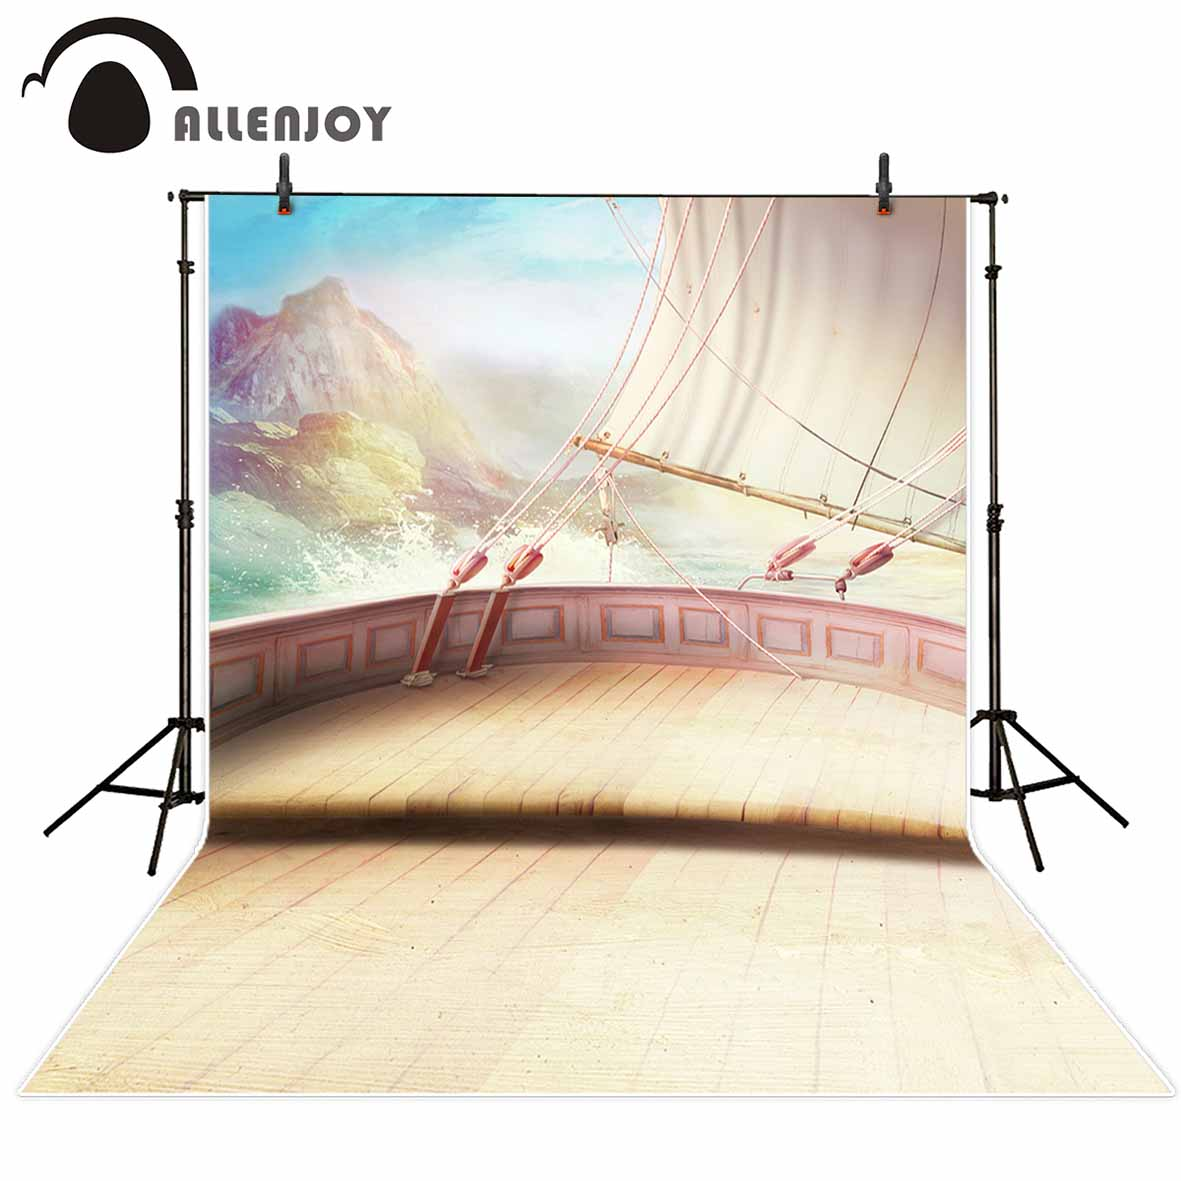 Allenjoy photo backdrops Boat ocean rafting classical travel background photocall newborn original design for photography studio